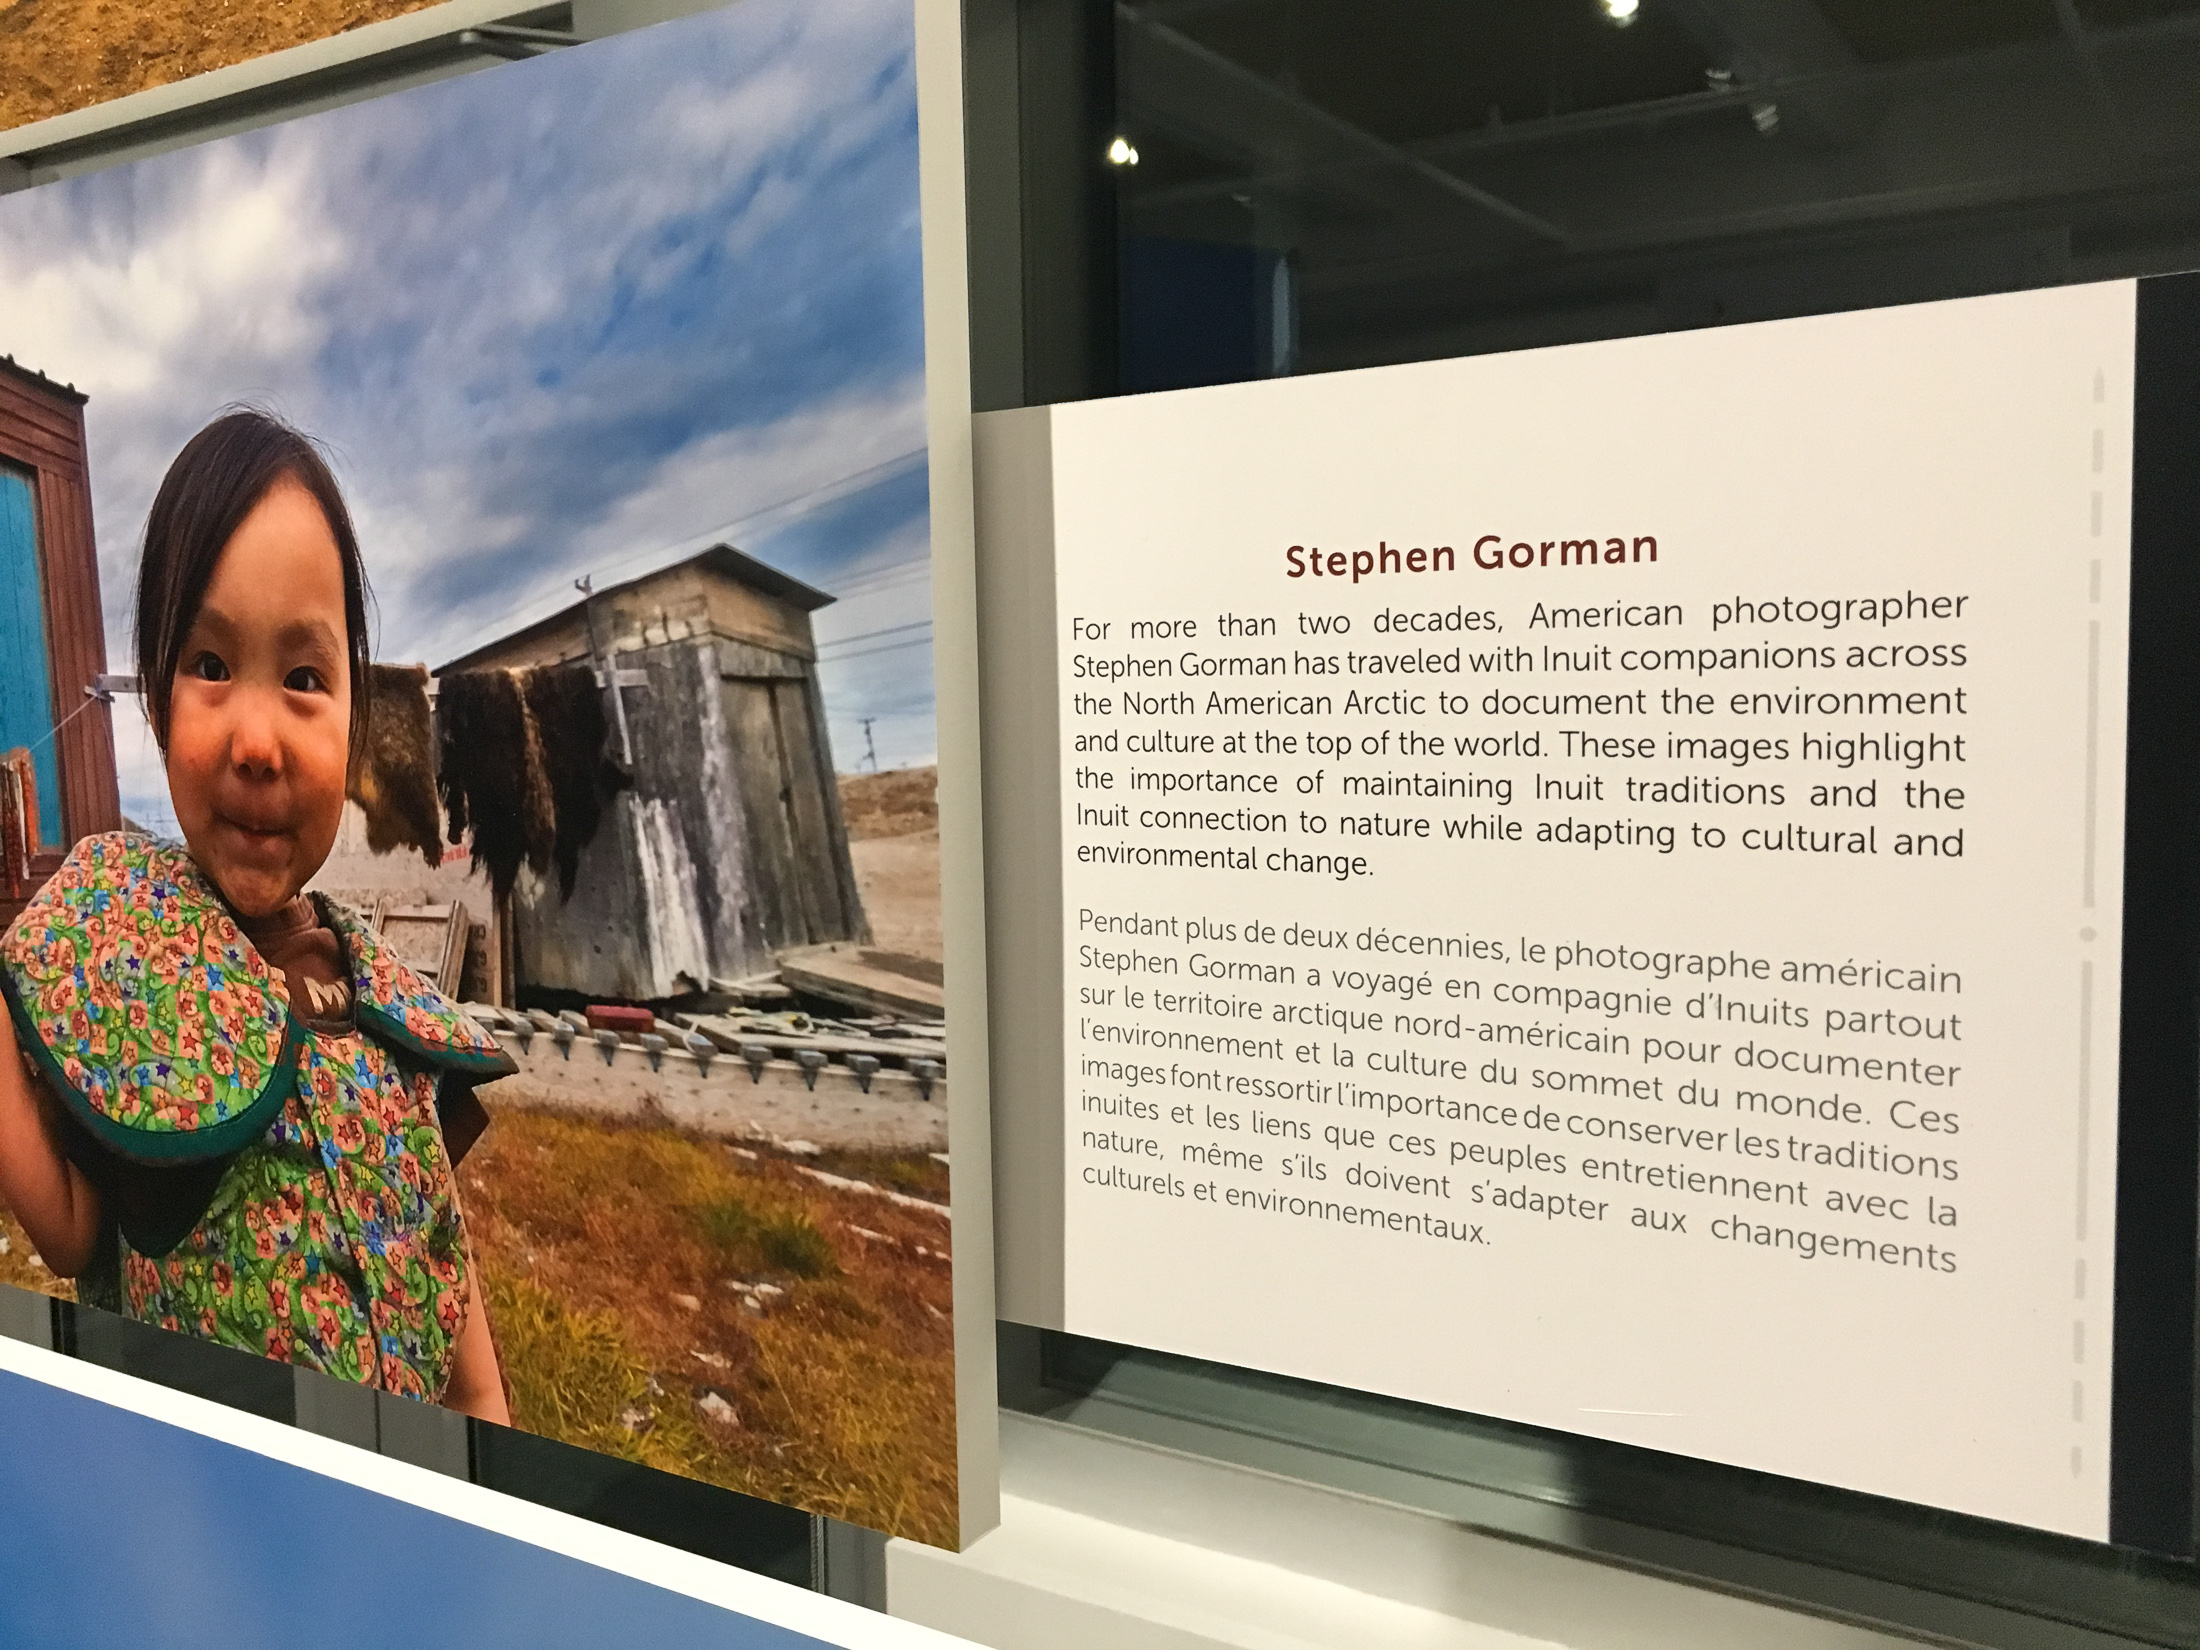 Stephen Gorman is the primary American photographer whose works are included in the exhibition.